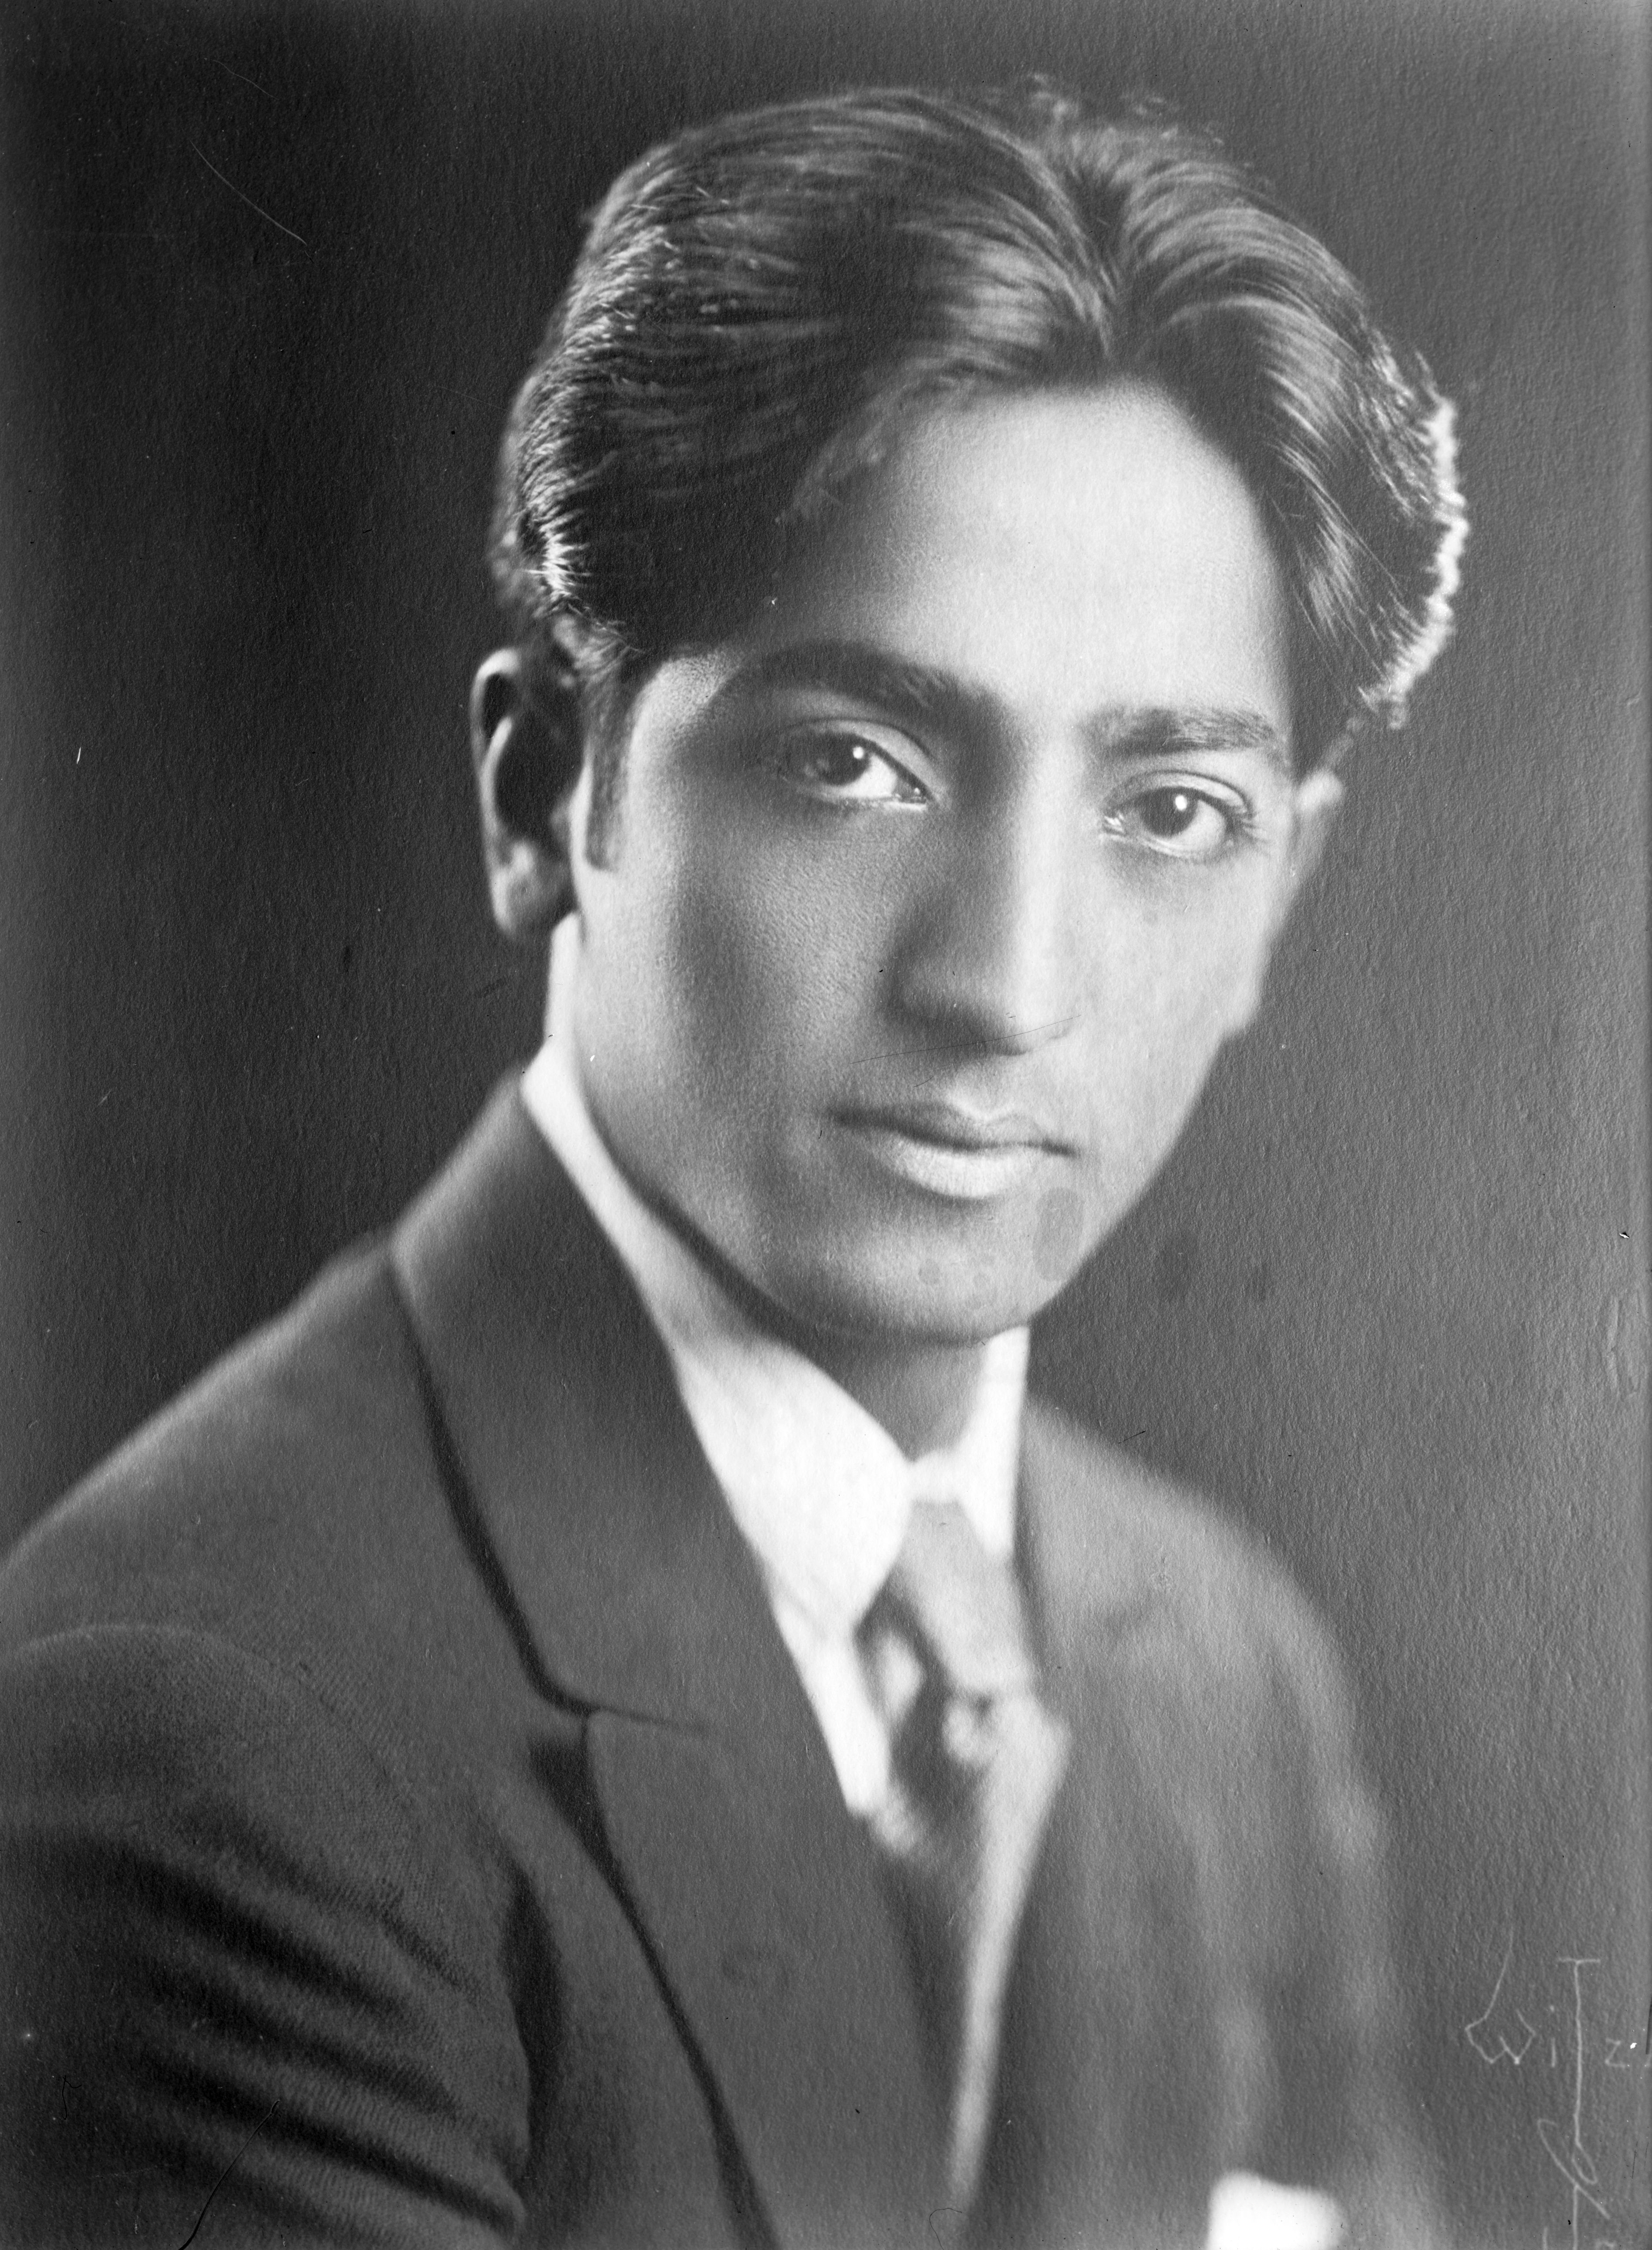 Jiddu Krishnamurti, public speaker, mystic, author, philosopher...